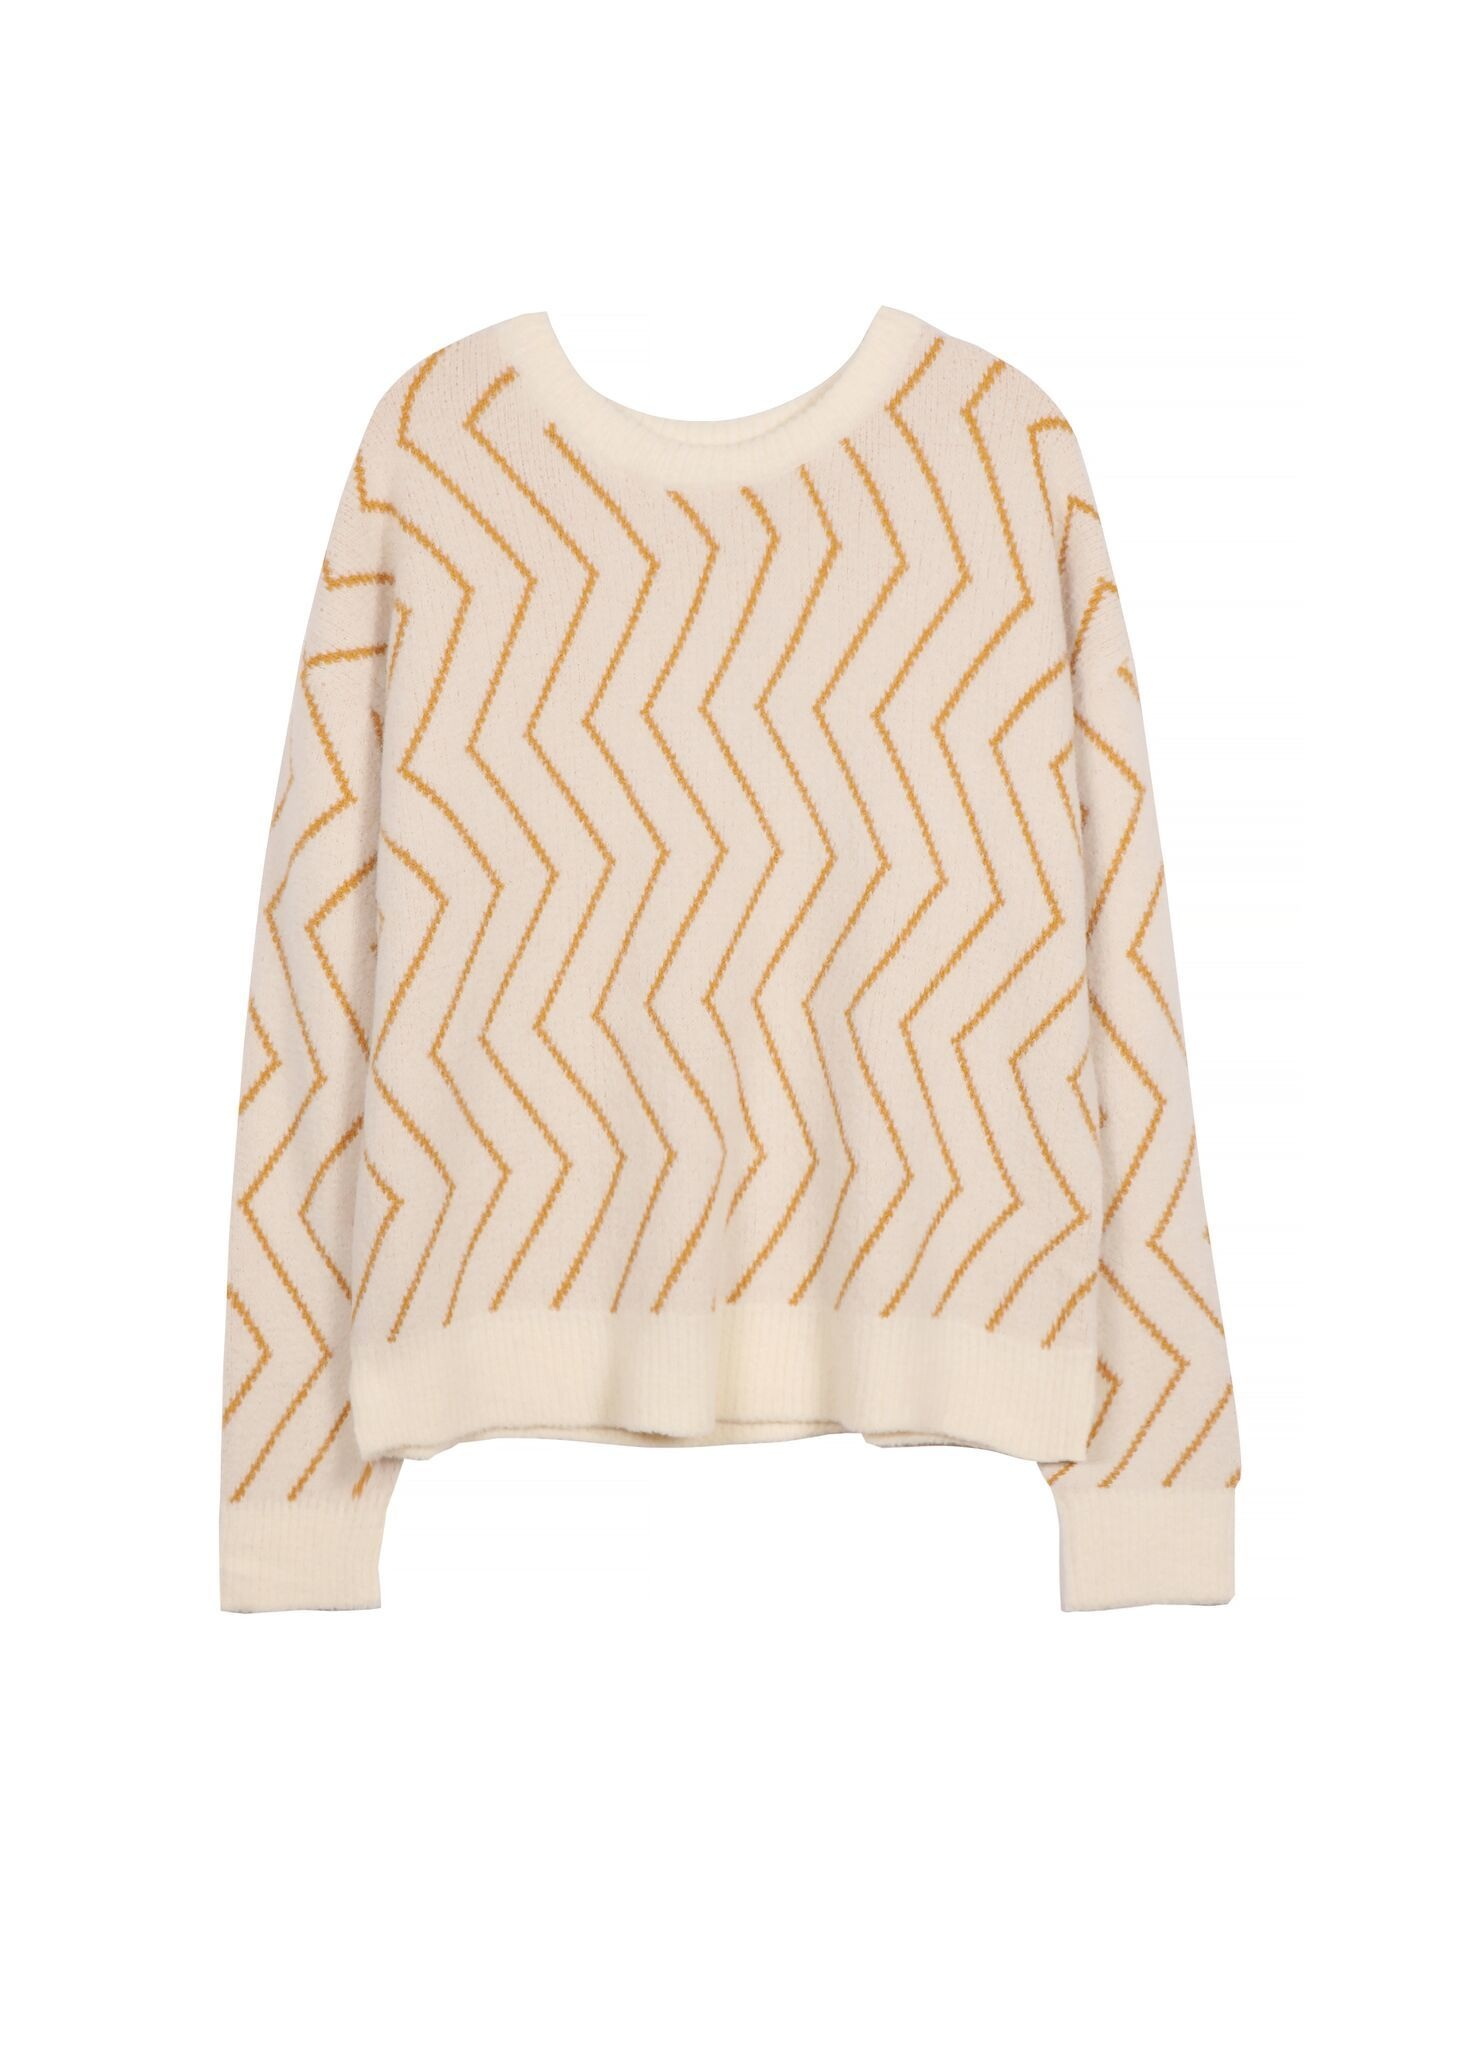 Frnch Mustard Chevrons Sweater